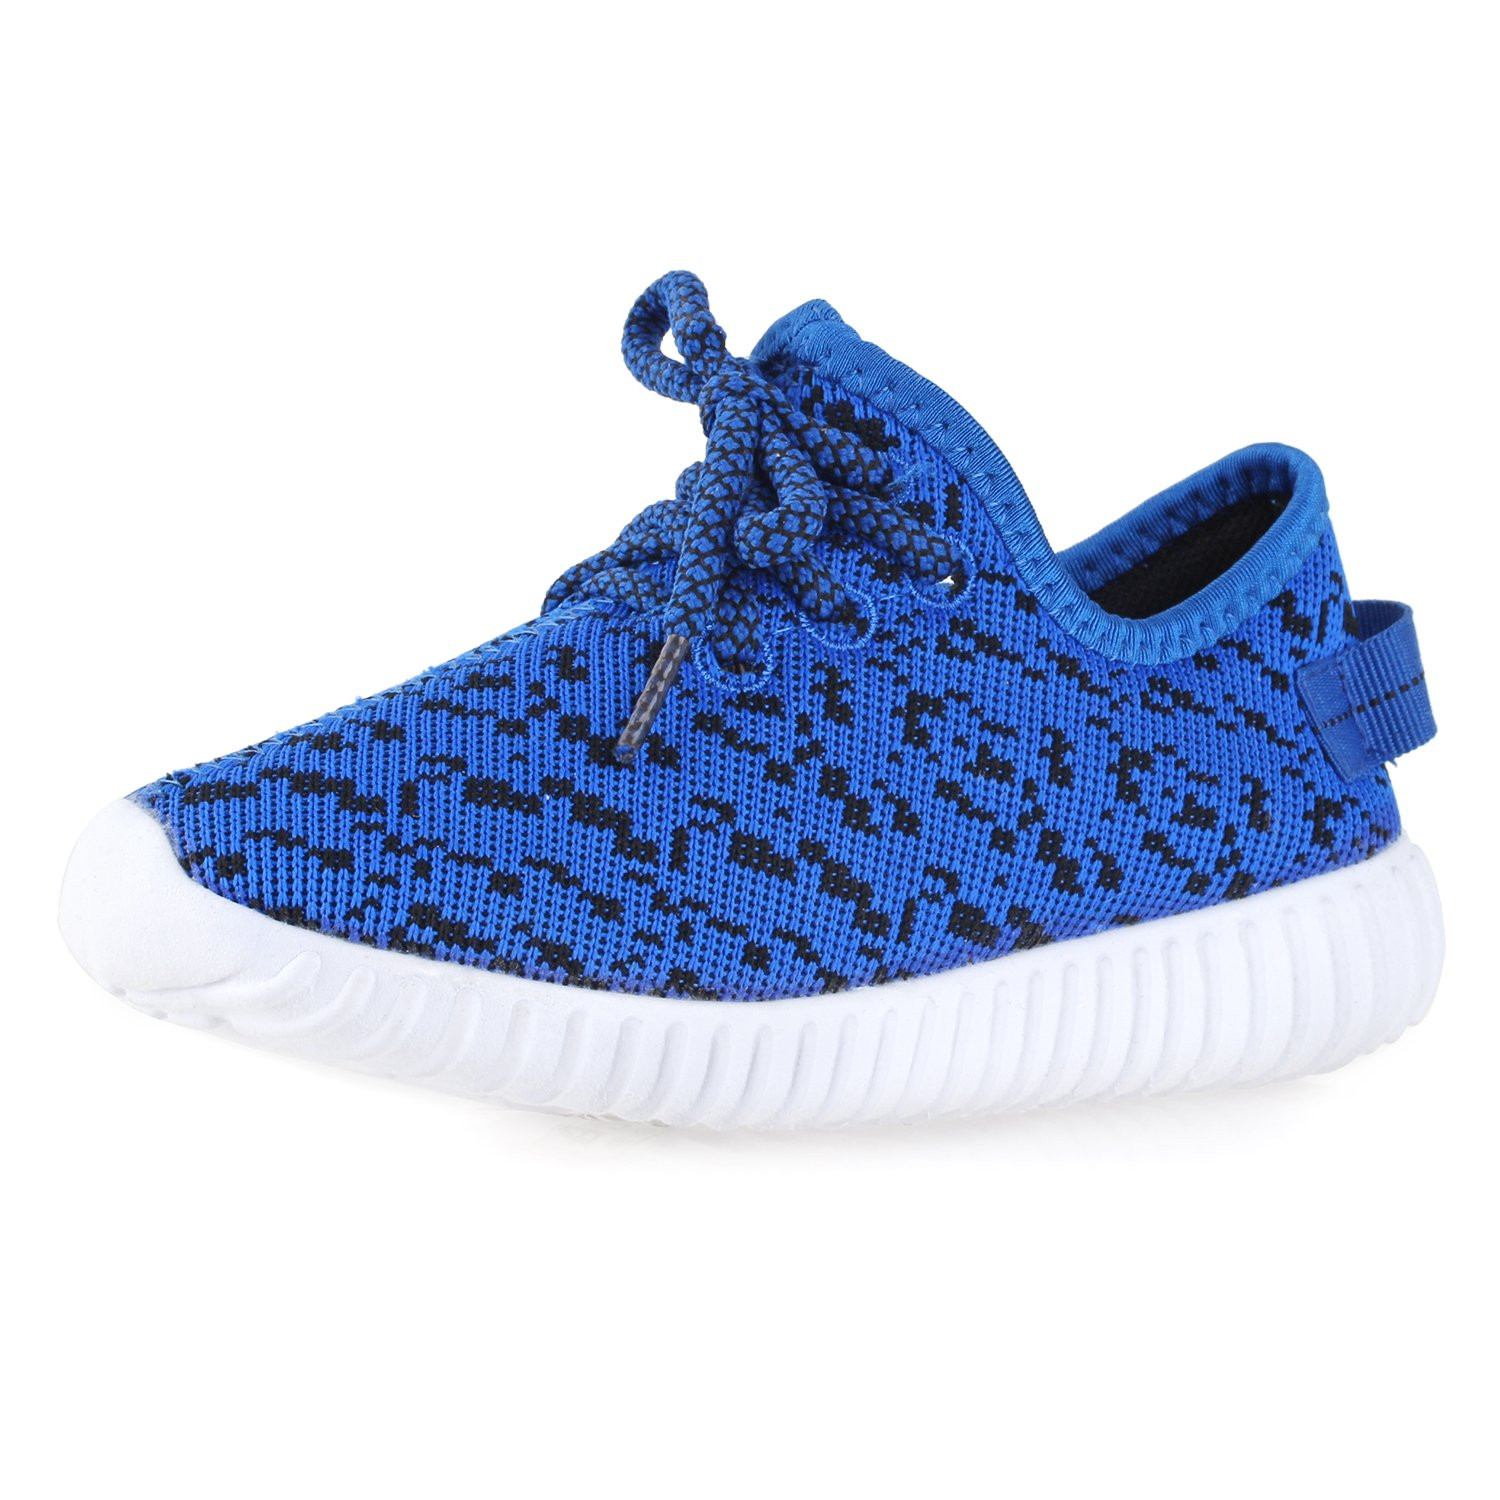 BLINX Boys Jogger Woven Knit Upper Casual Sneakers Shoes Royal Blue 13 by BLINX (Image #1)